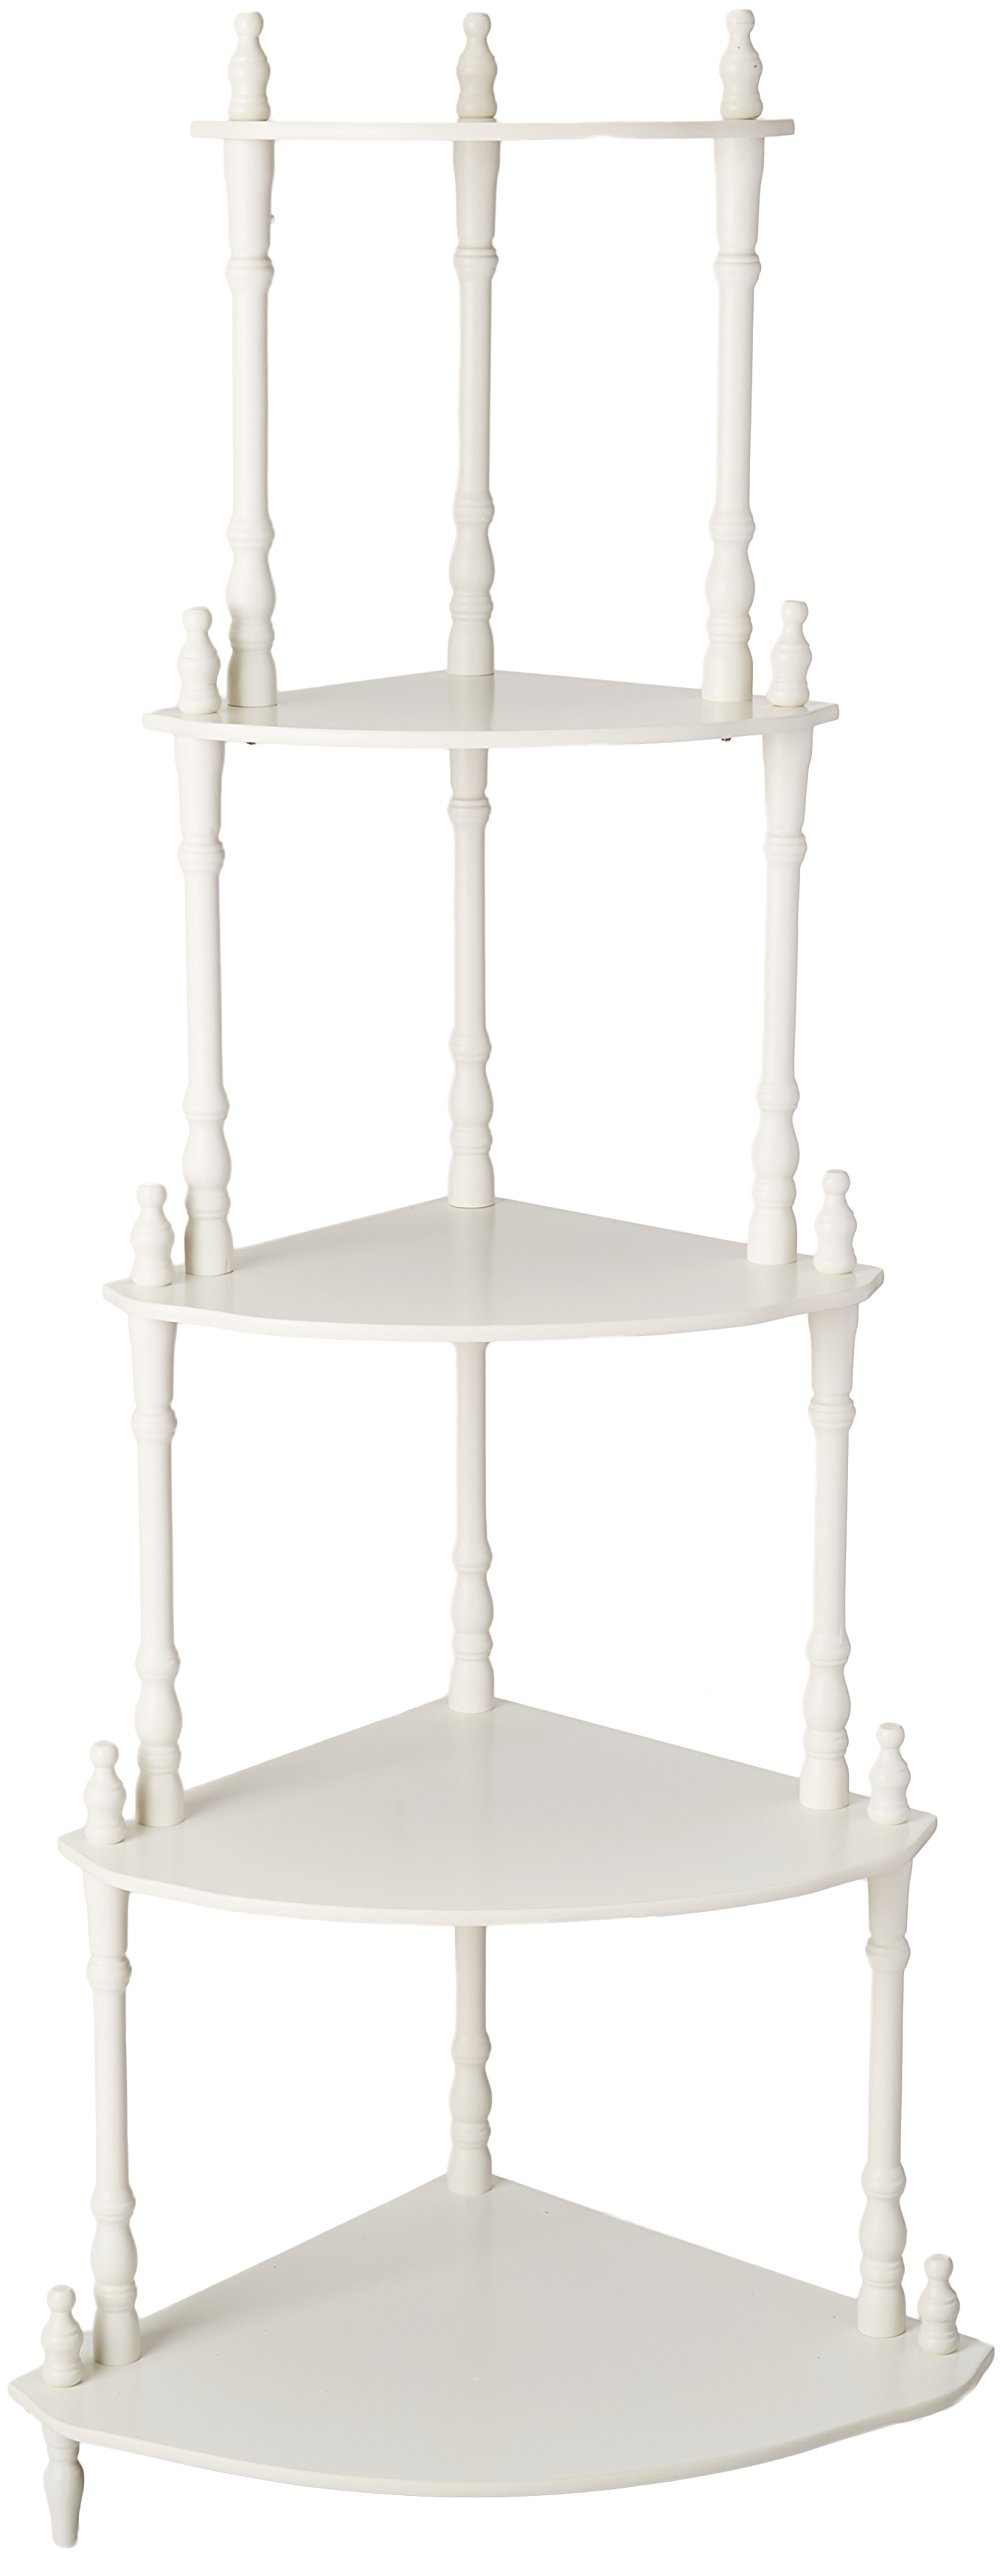 Frenchi Furniture - 5-Tier Corner Stand Finish: White by Frenchi (Image #1)